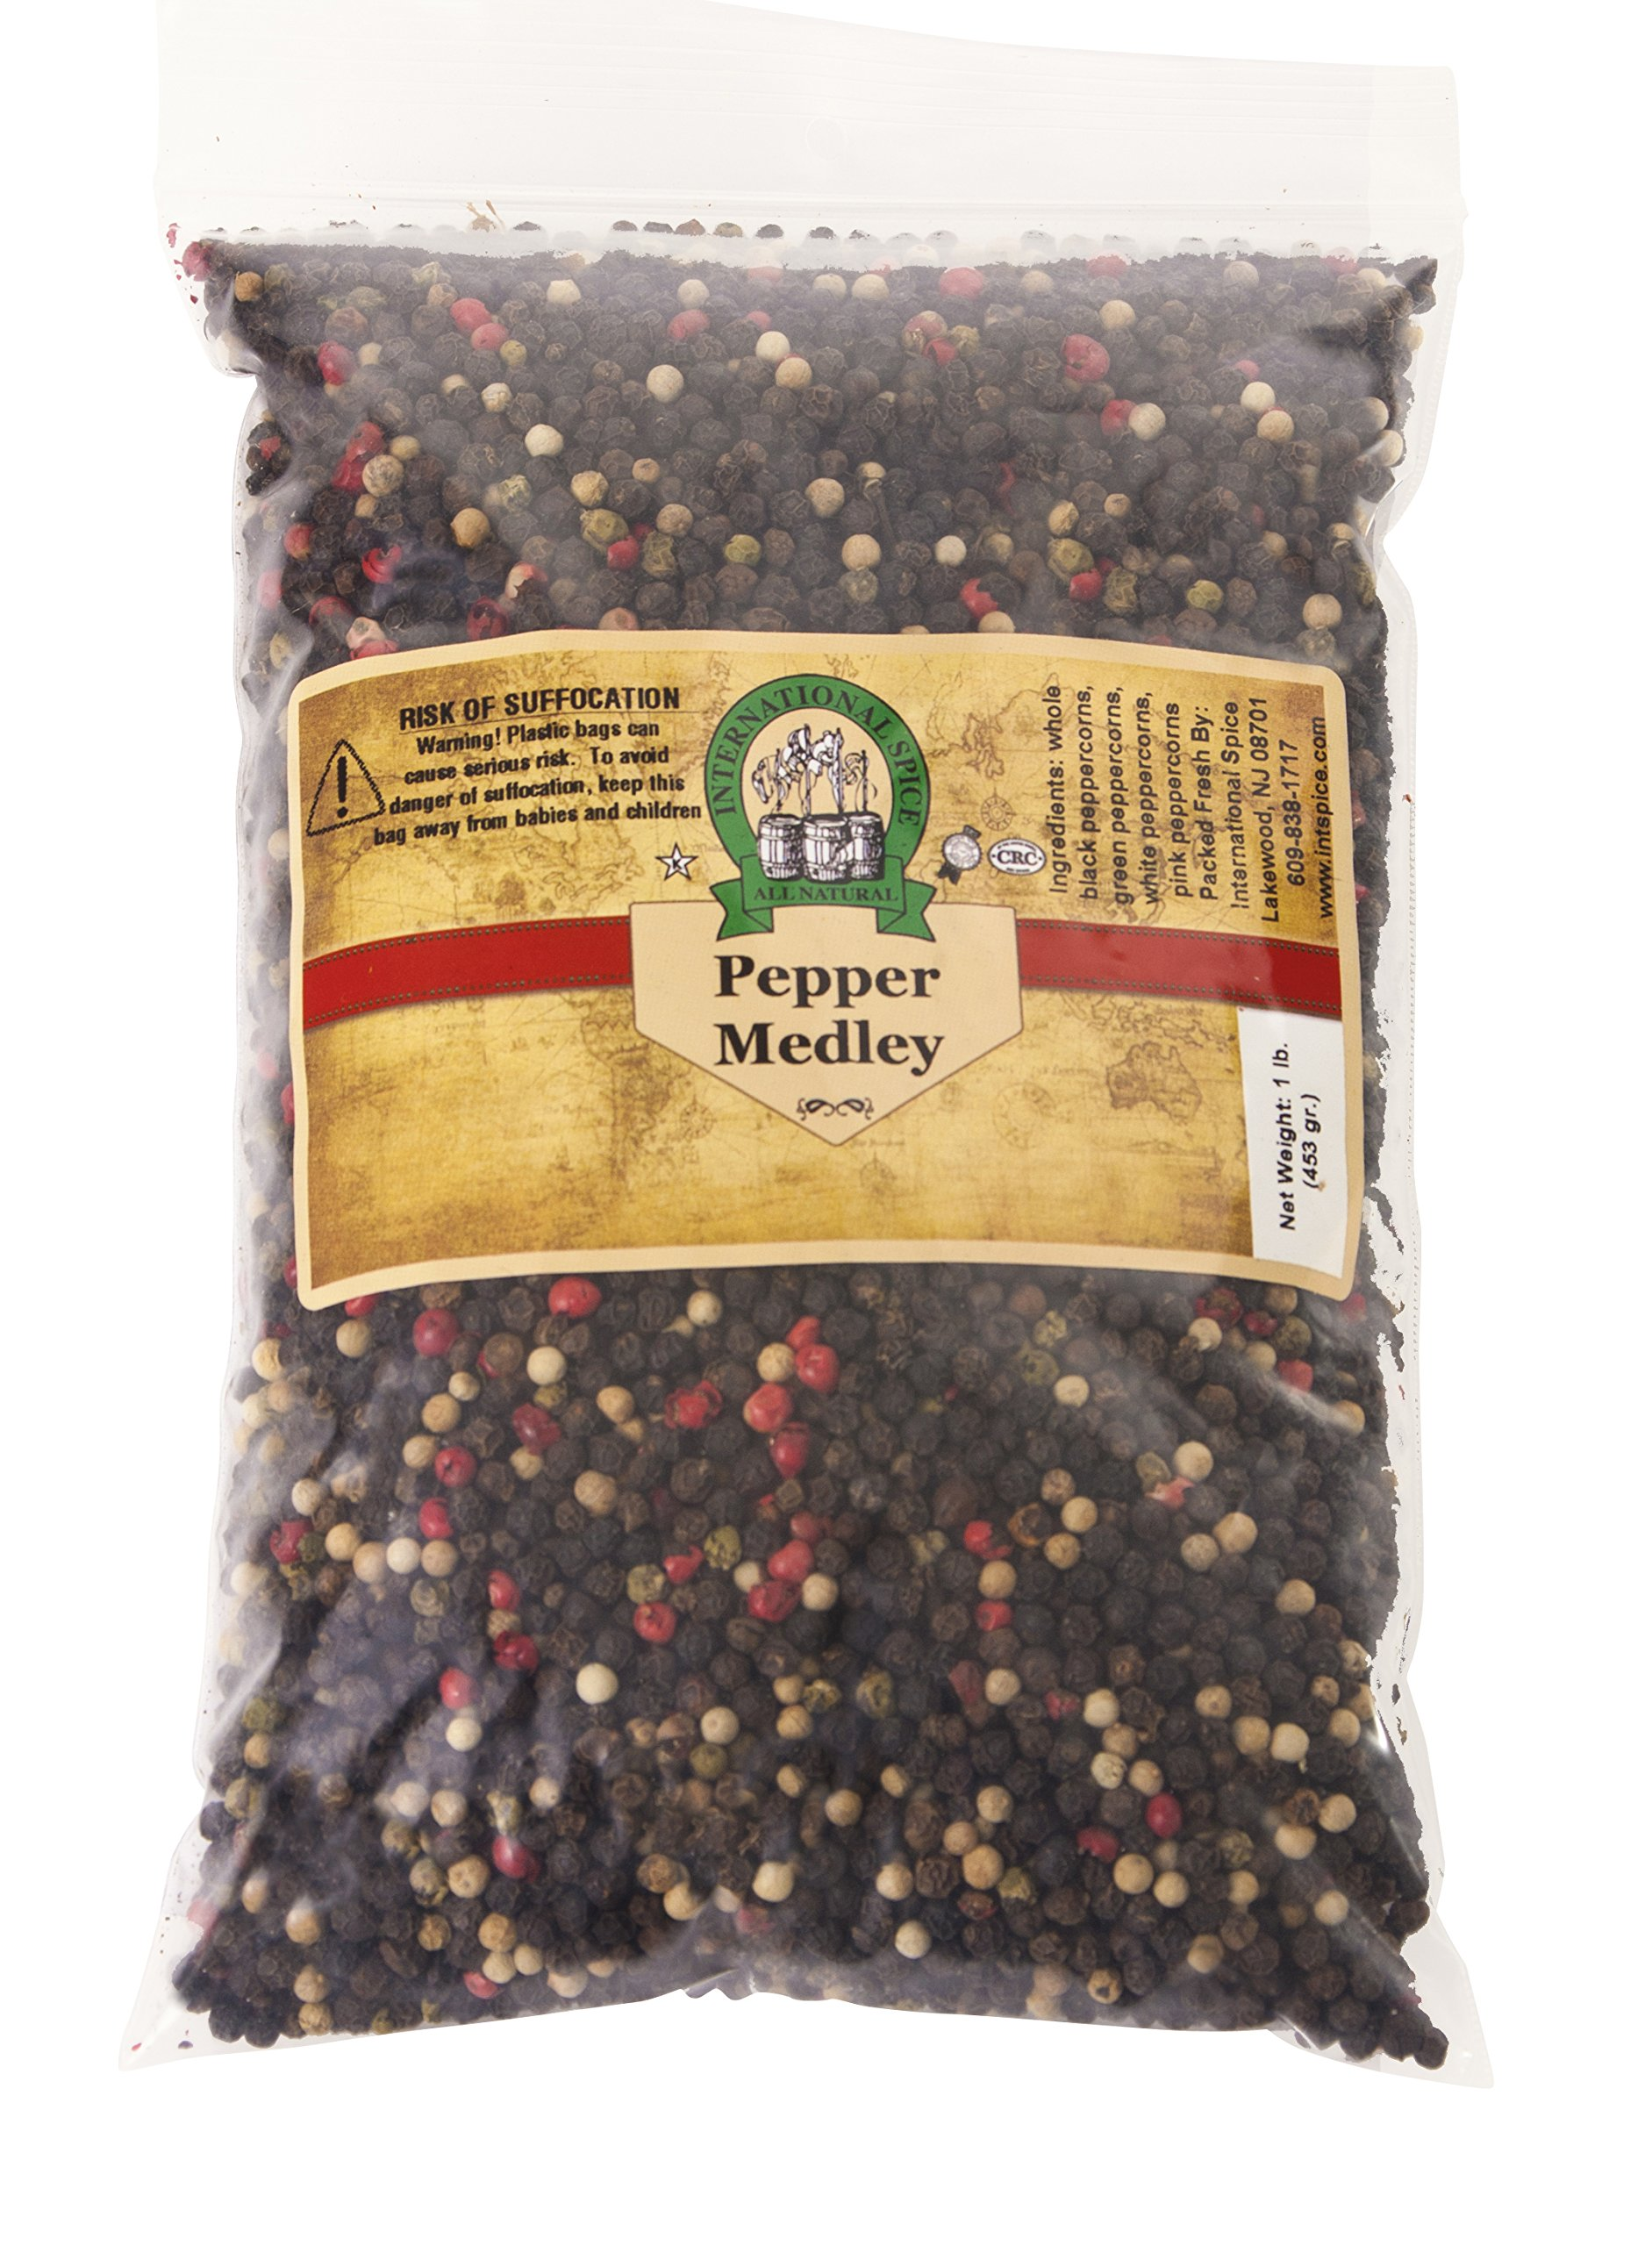 International Spice- Mixed Peppercorns (Whole)-: 16 Oz. Bag by International Spice